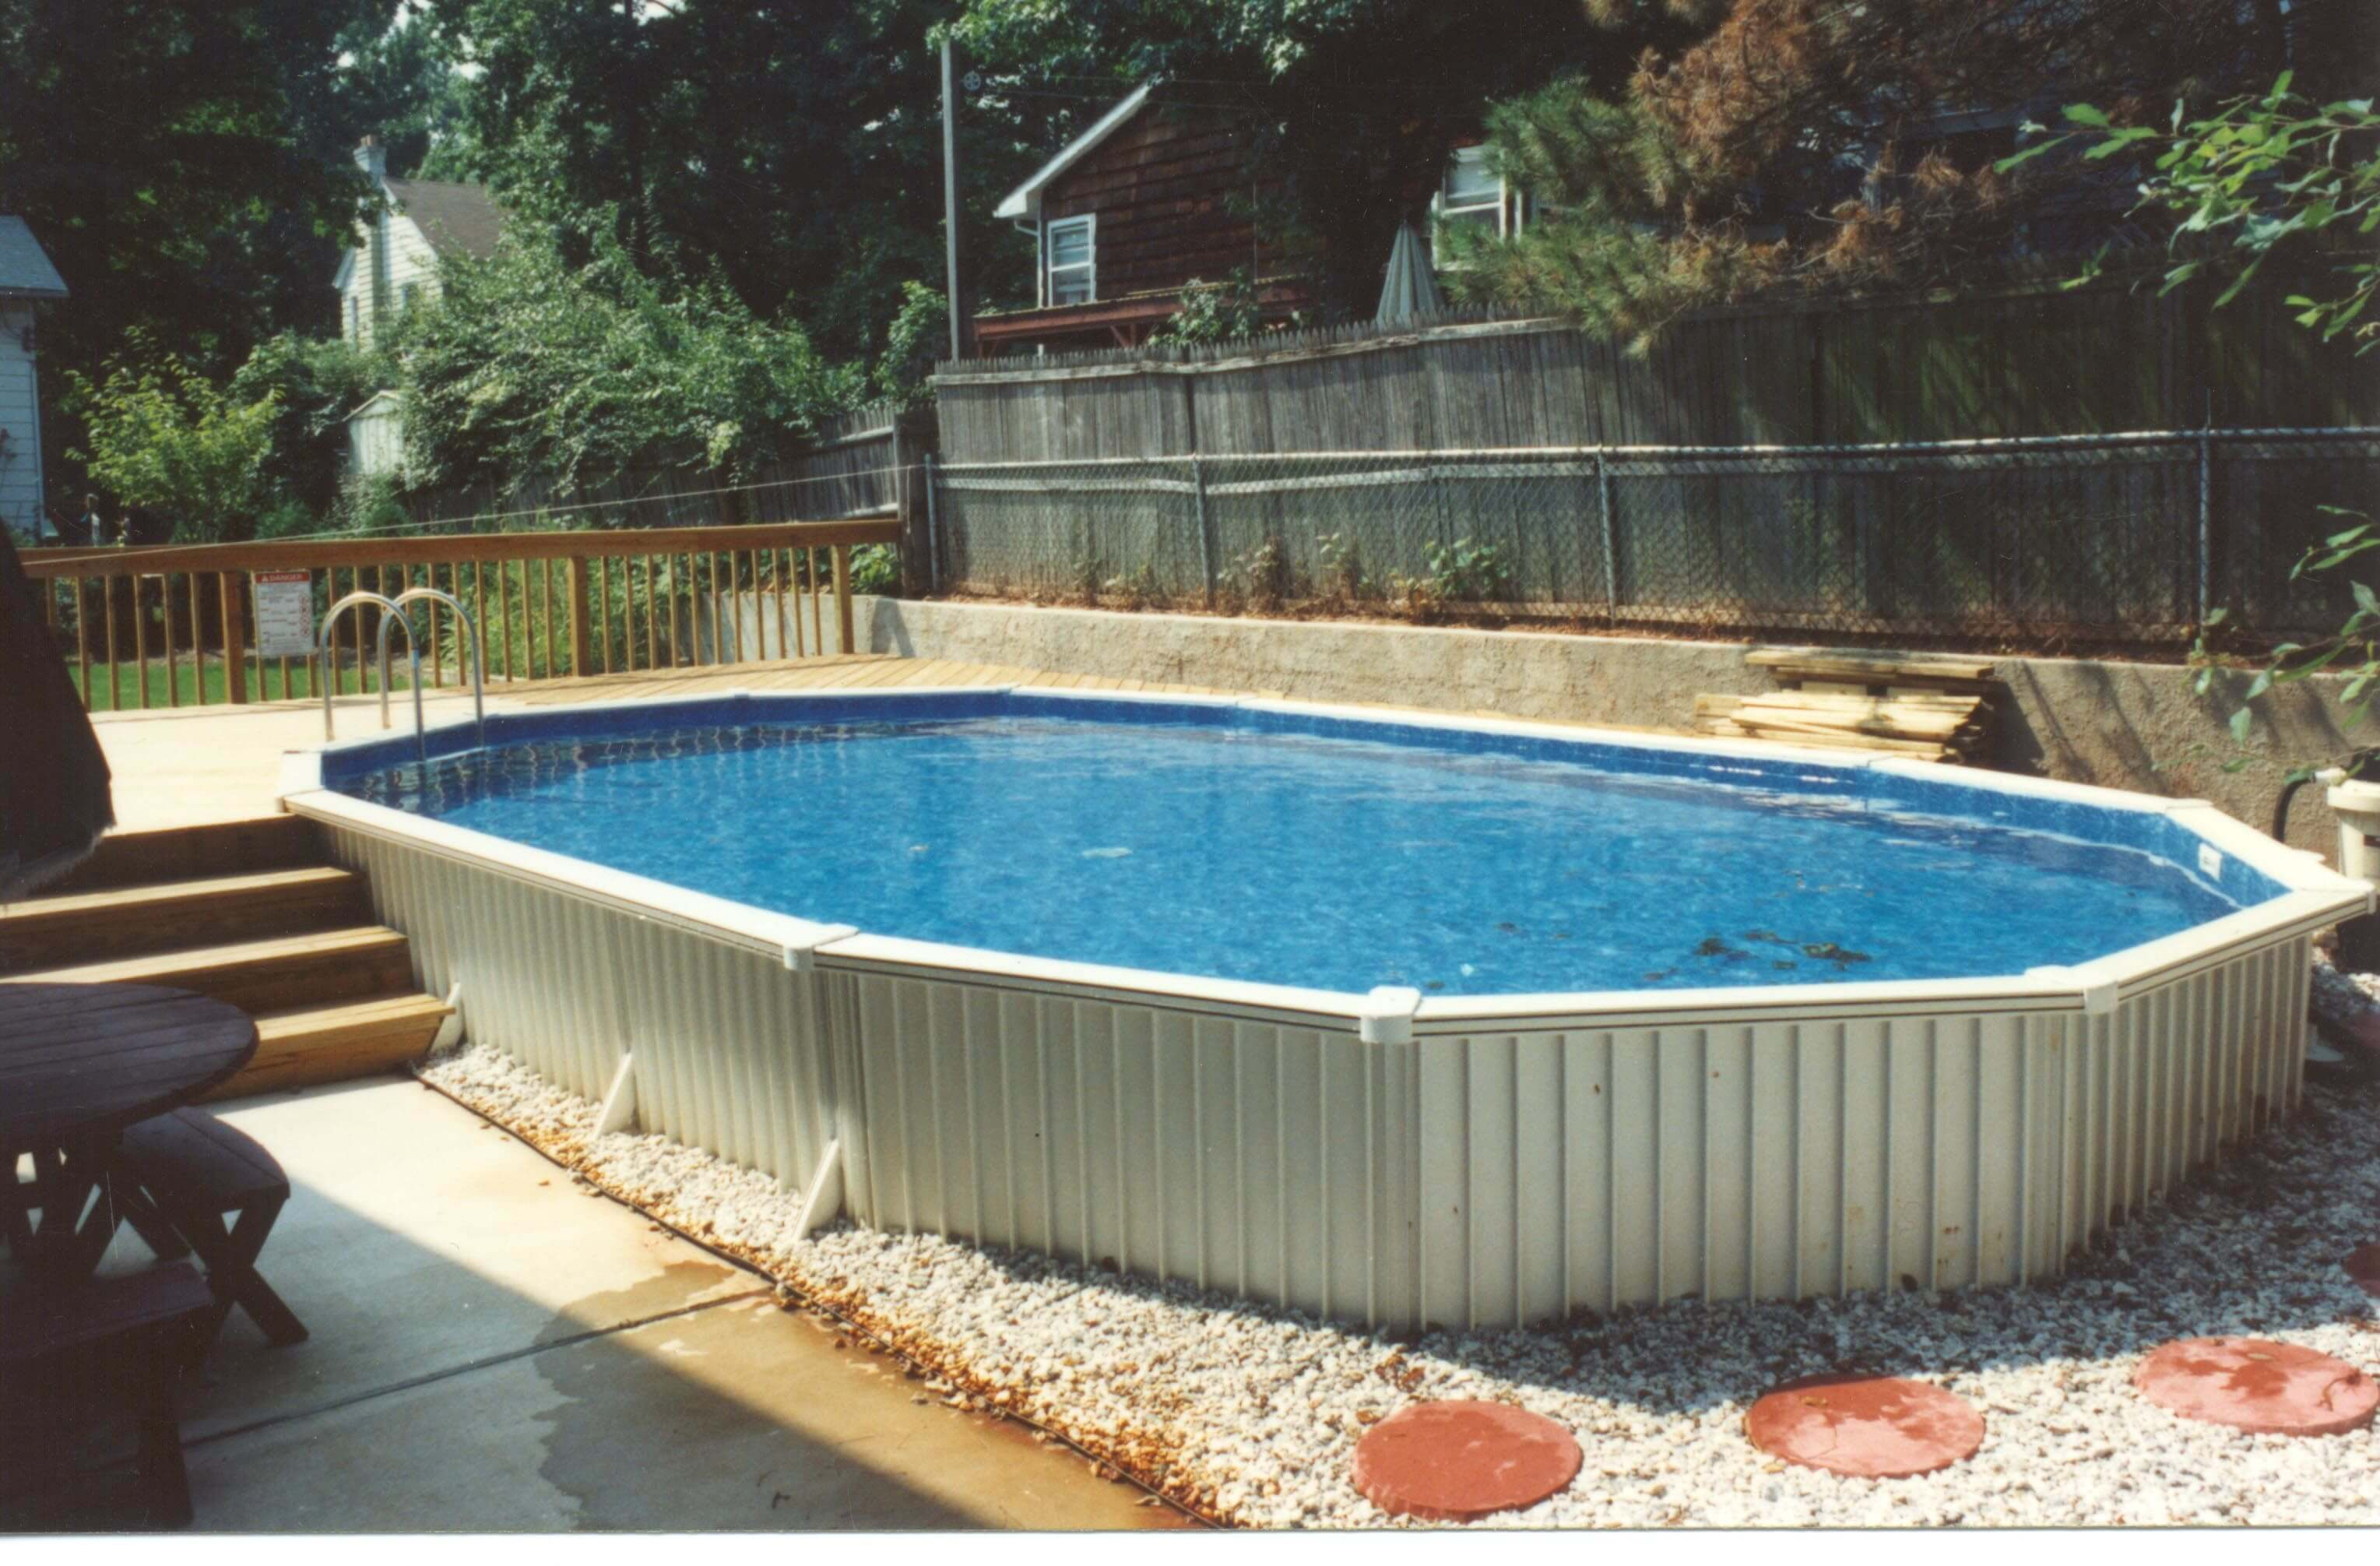 Best rated above ground pool matching any design taste for Above ground pool decks nj